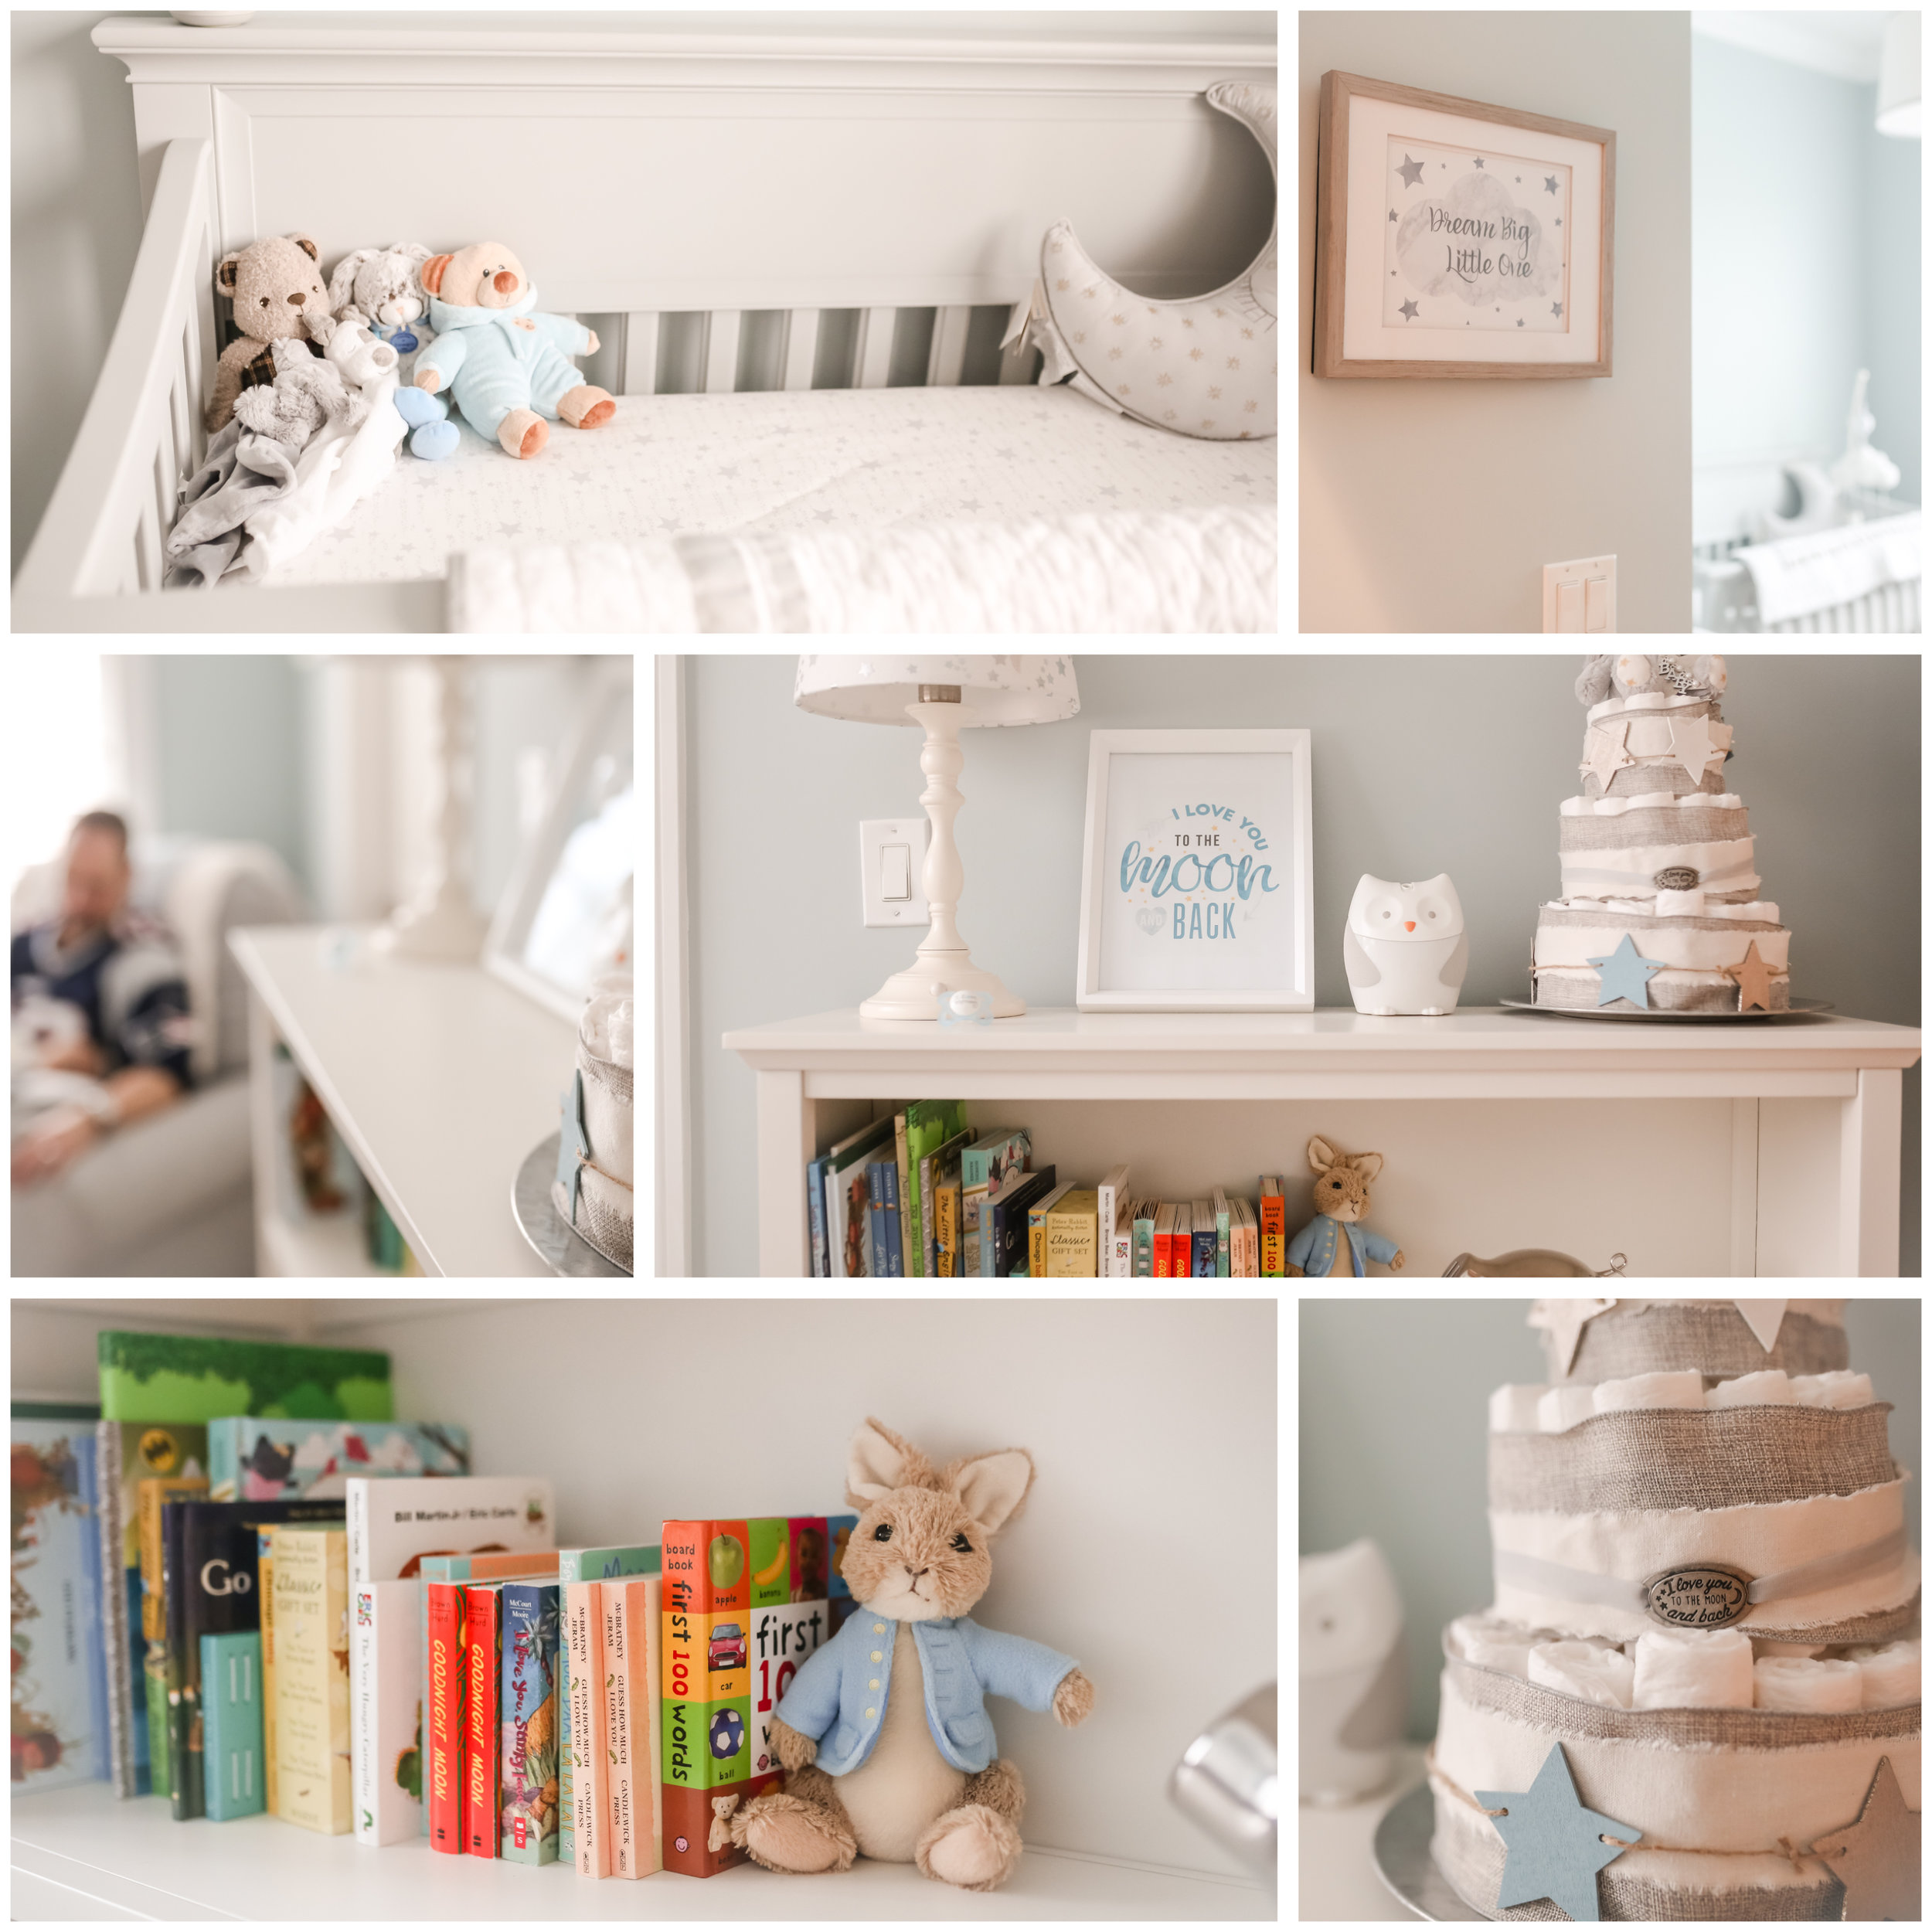 jenny grimm photography chicago newborn baby nursery lifestyle home session